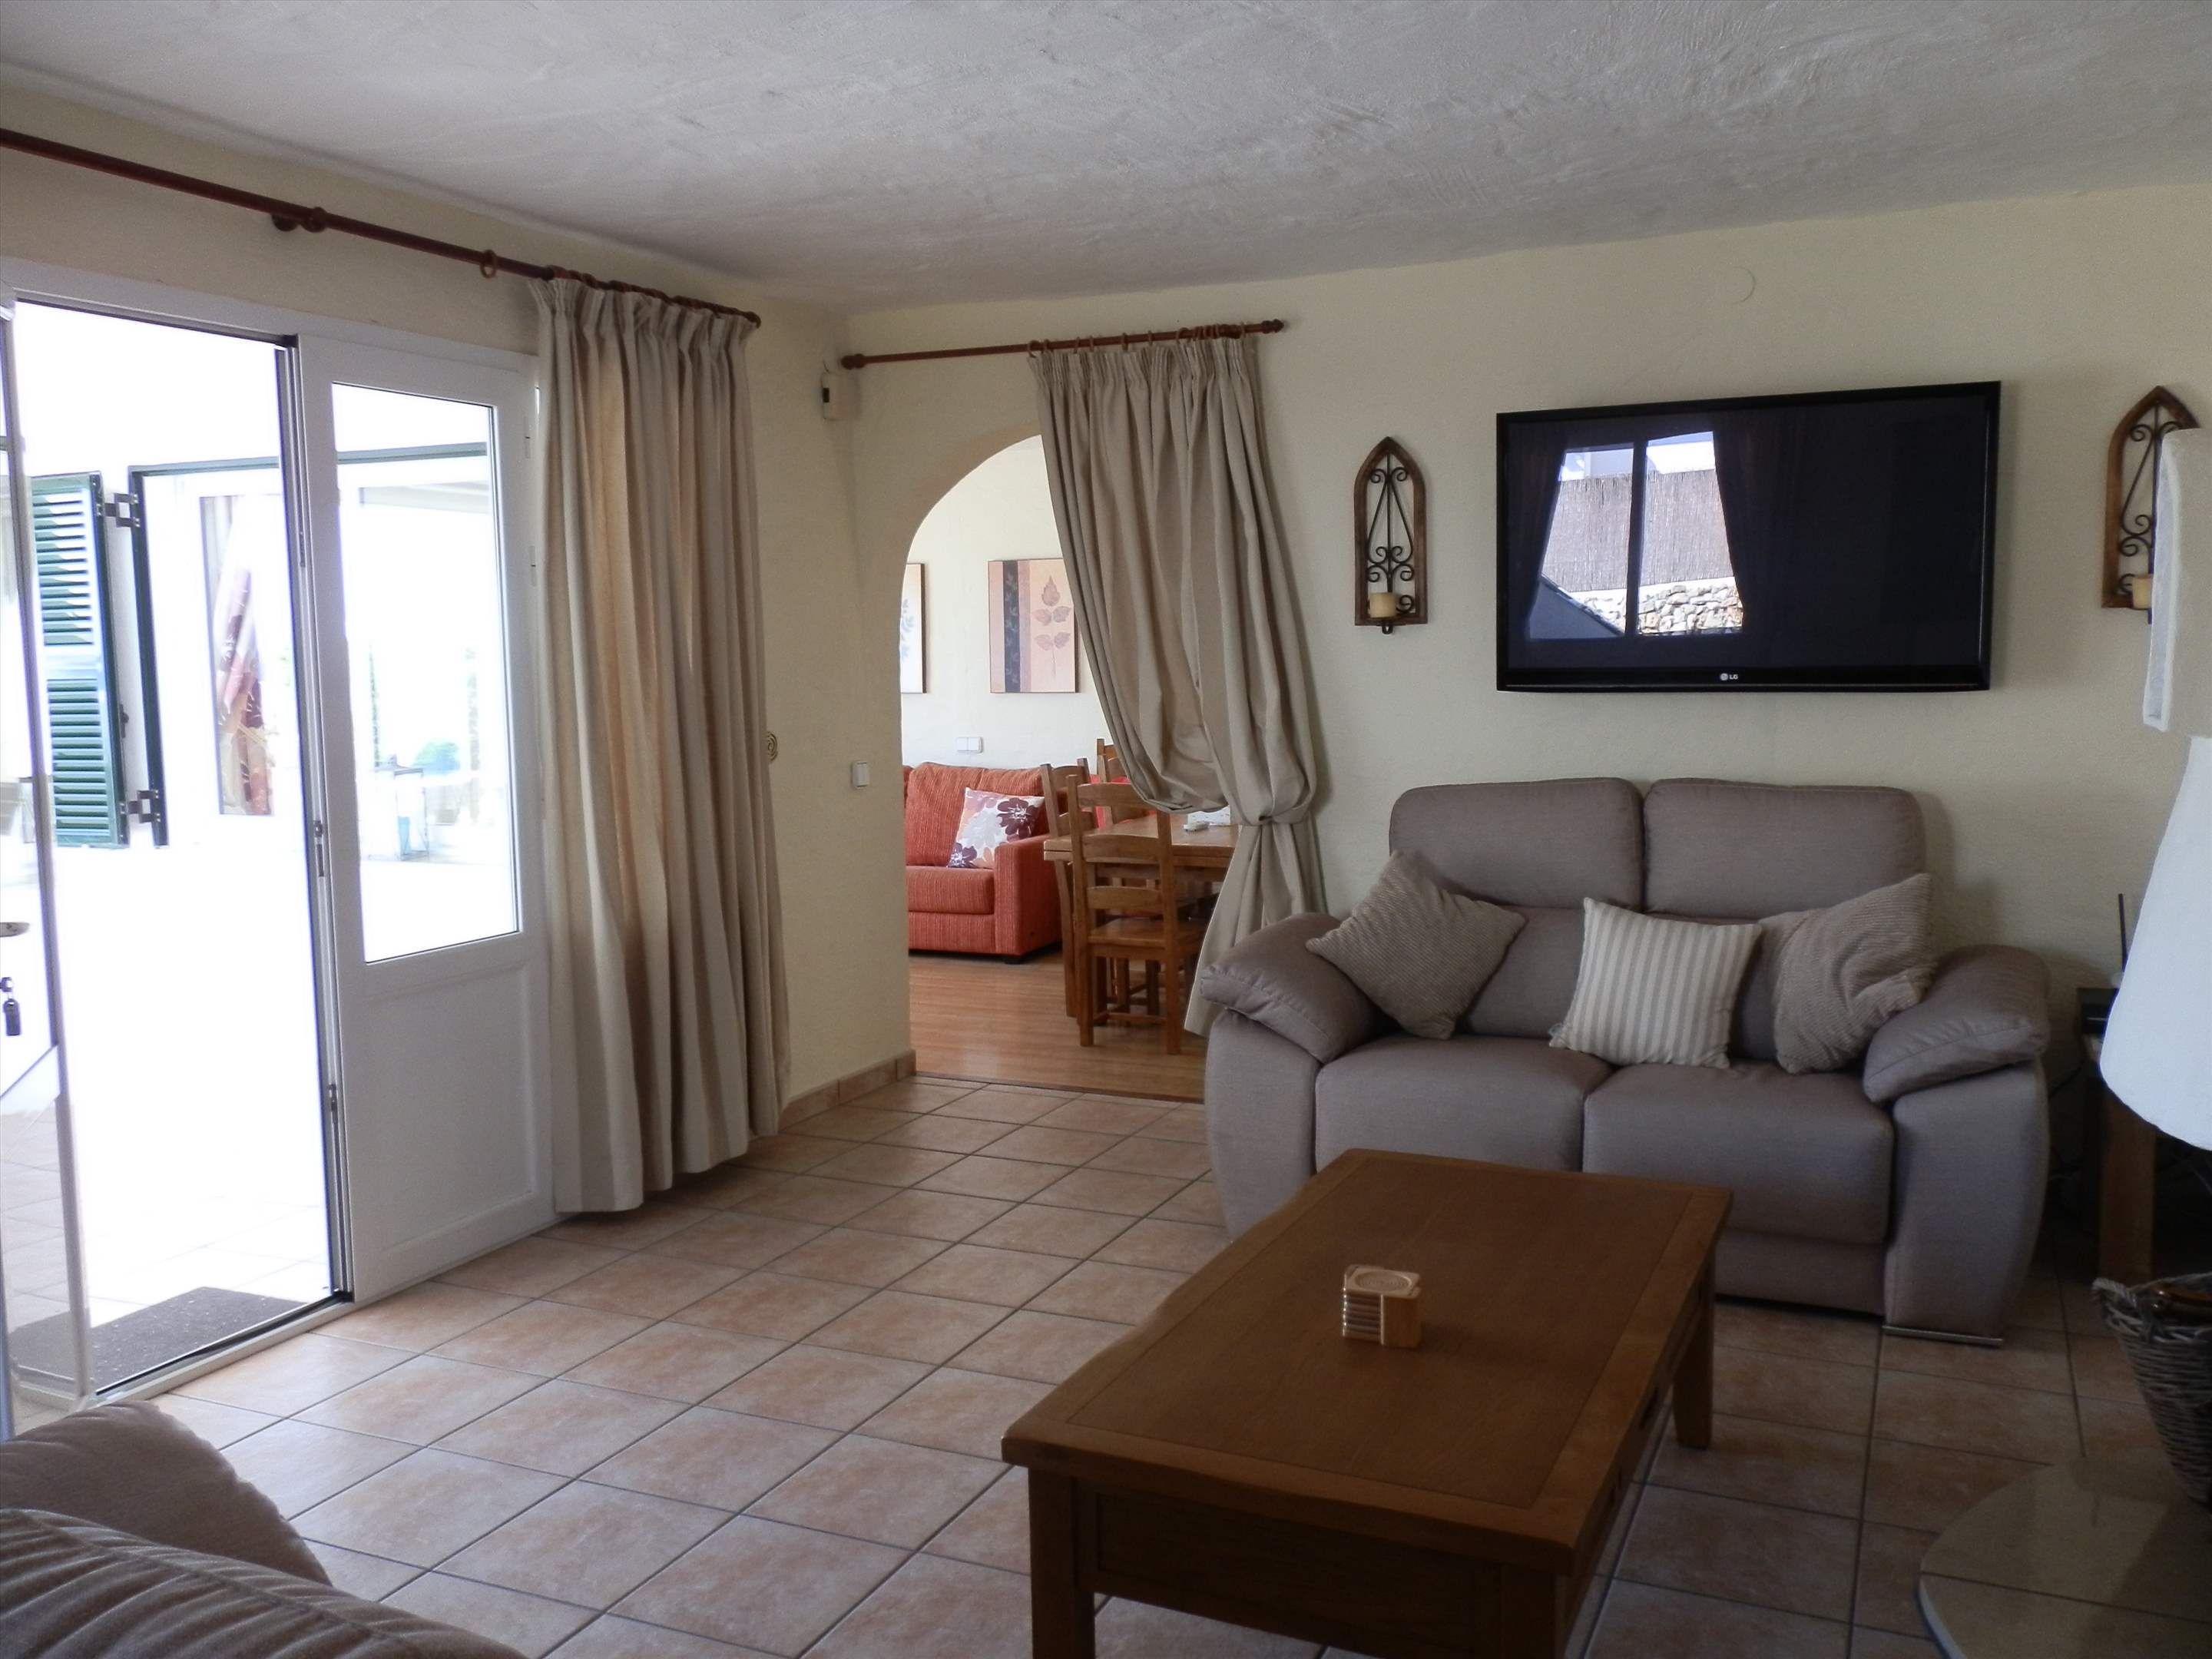 Villa La Palmera, 4 bedroom villa in Mahon, San Luis & South East, Menorca Photo #7